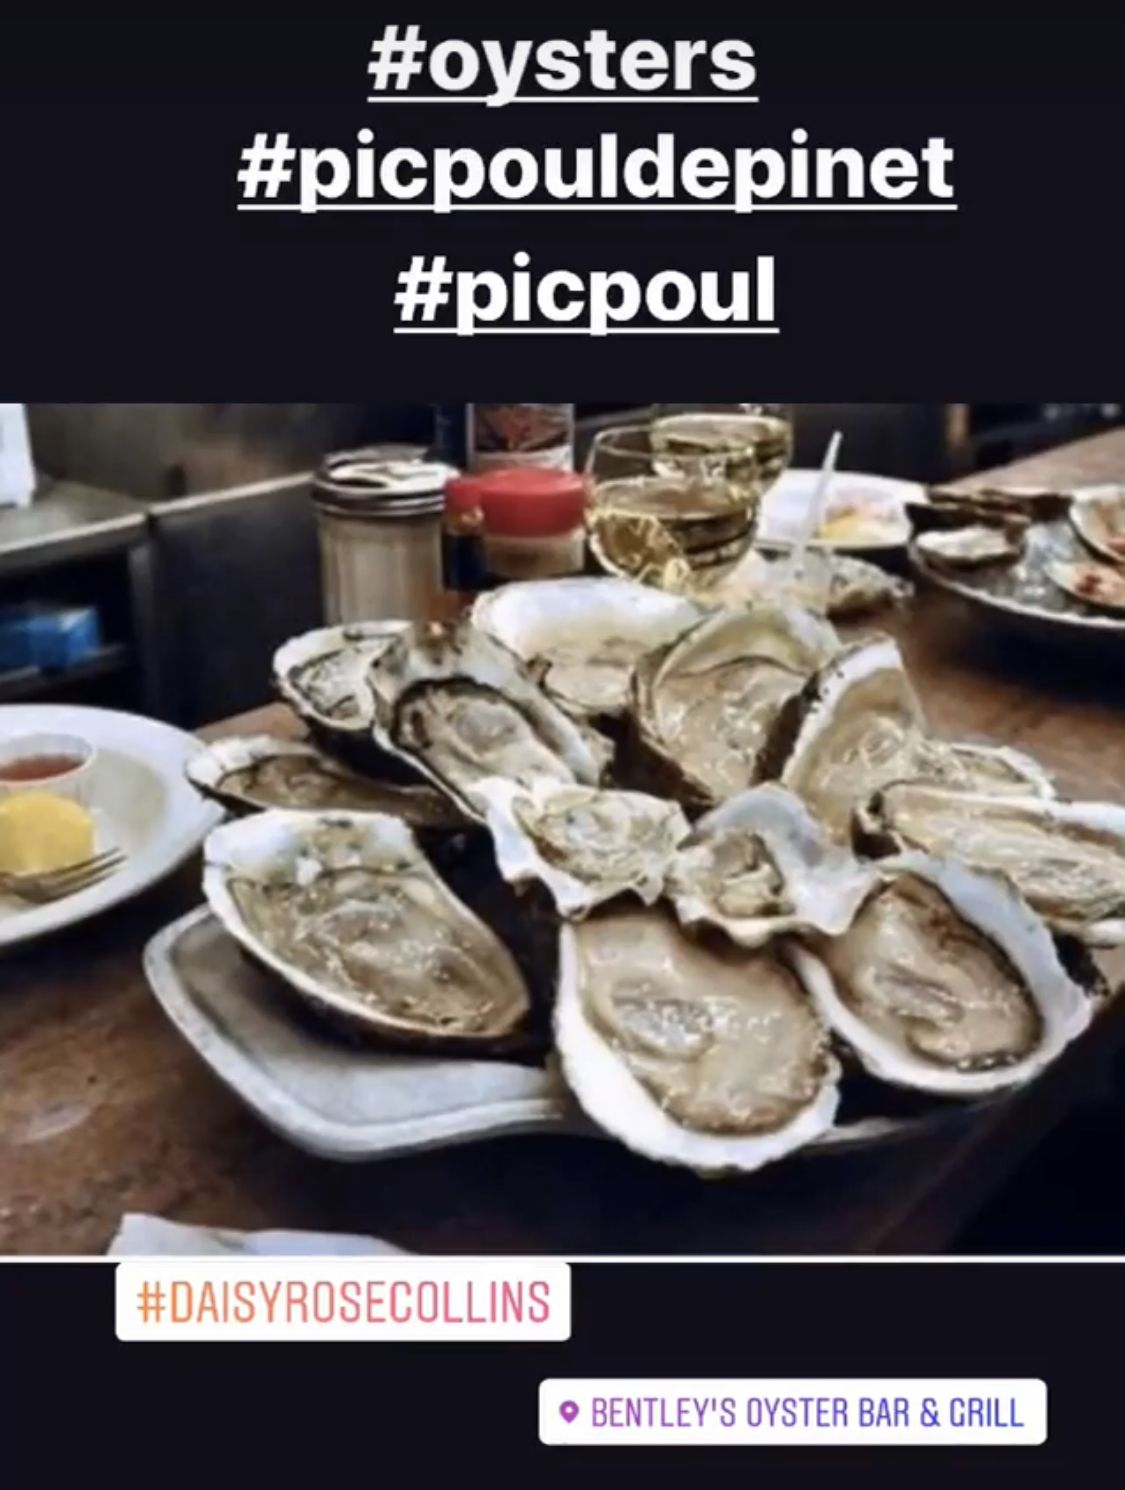 Oysters Bentley's oysters are amazing, great selection & quality really fresh. I like to have mine just as they come with a squeeze of lemon. I usually have the Dover soul there for my main as that's really good, washed down with a nice glass of picpoul. It's a great place with great staff. 😊